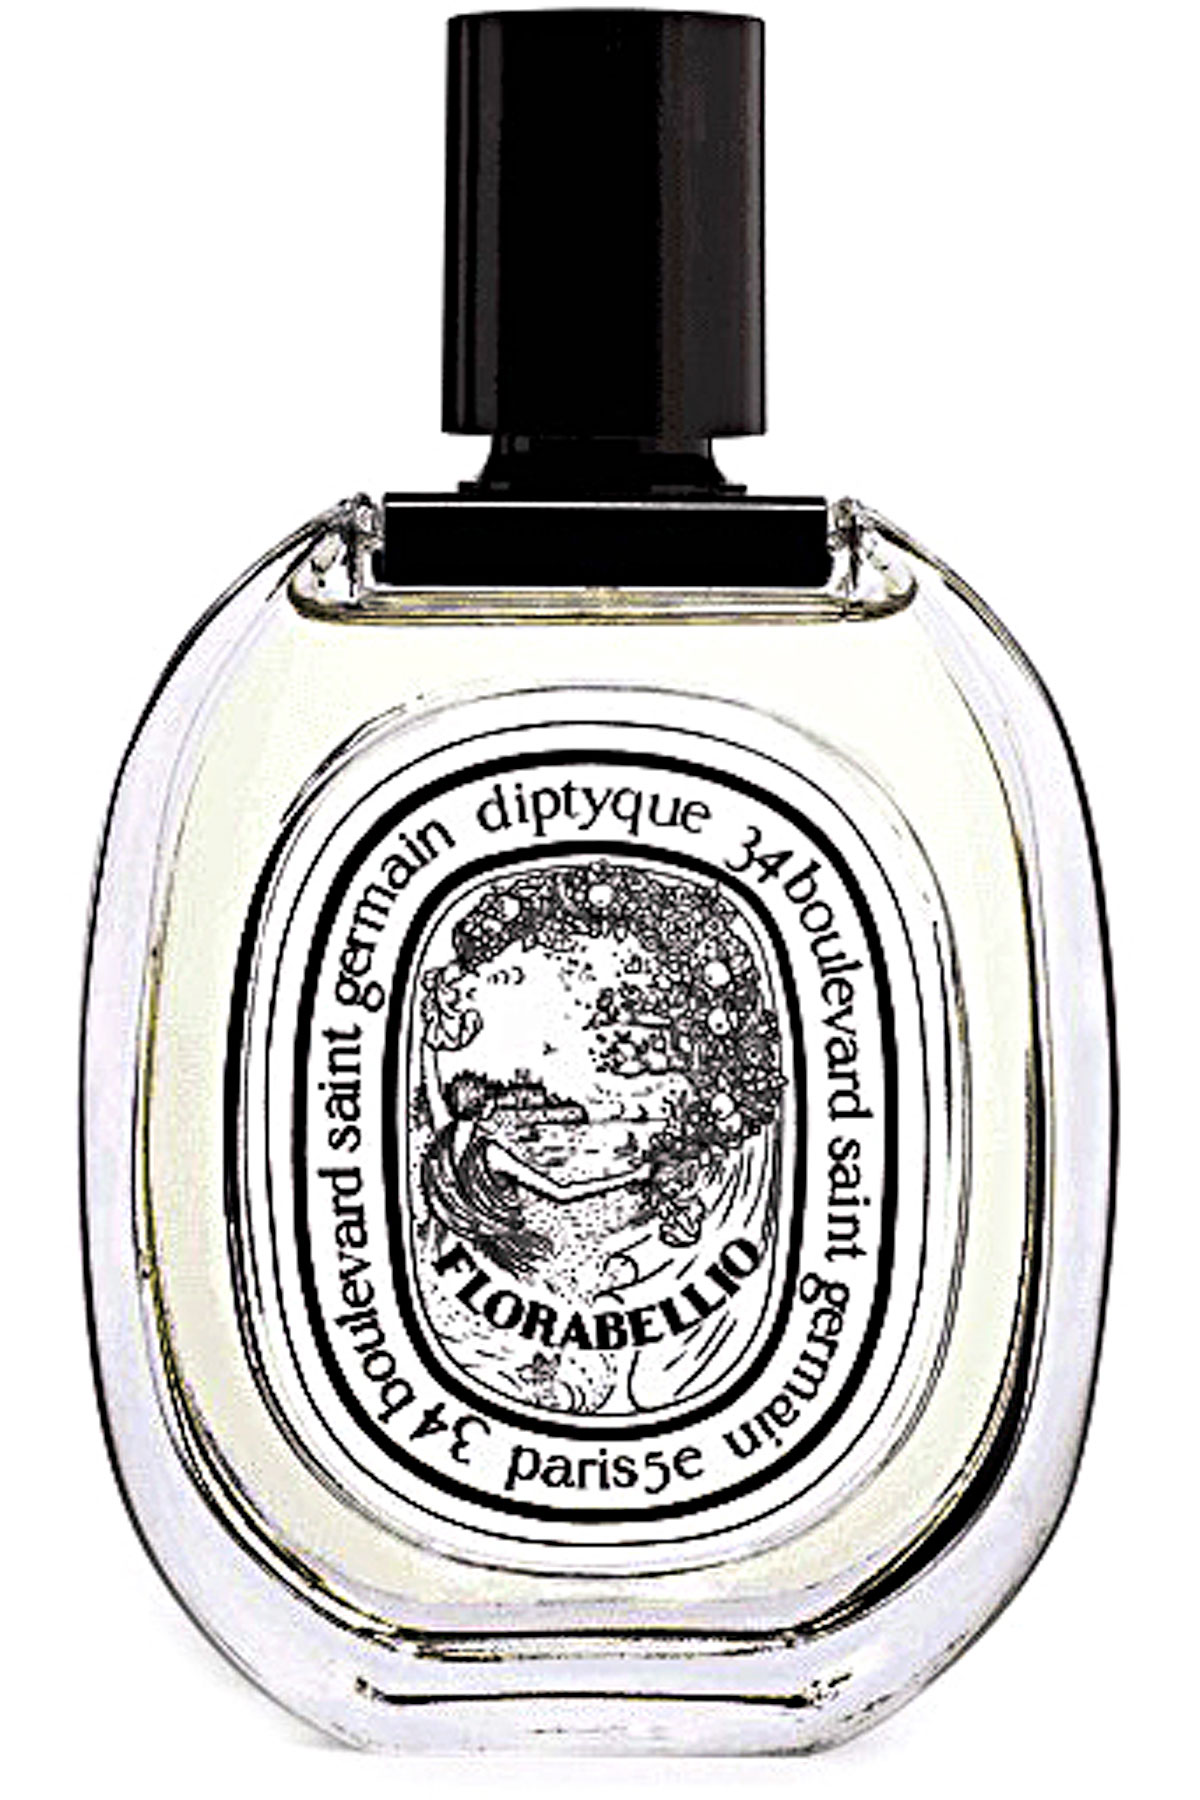 Diptyque Fragrances for Men, Florabellio - Eau De Toilette - 100 Ml, 2019, 100 ml